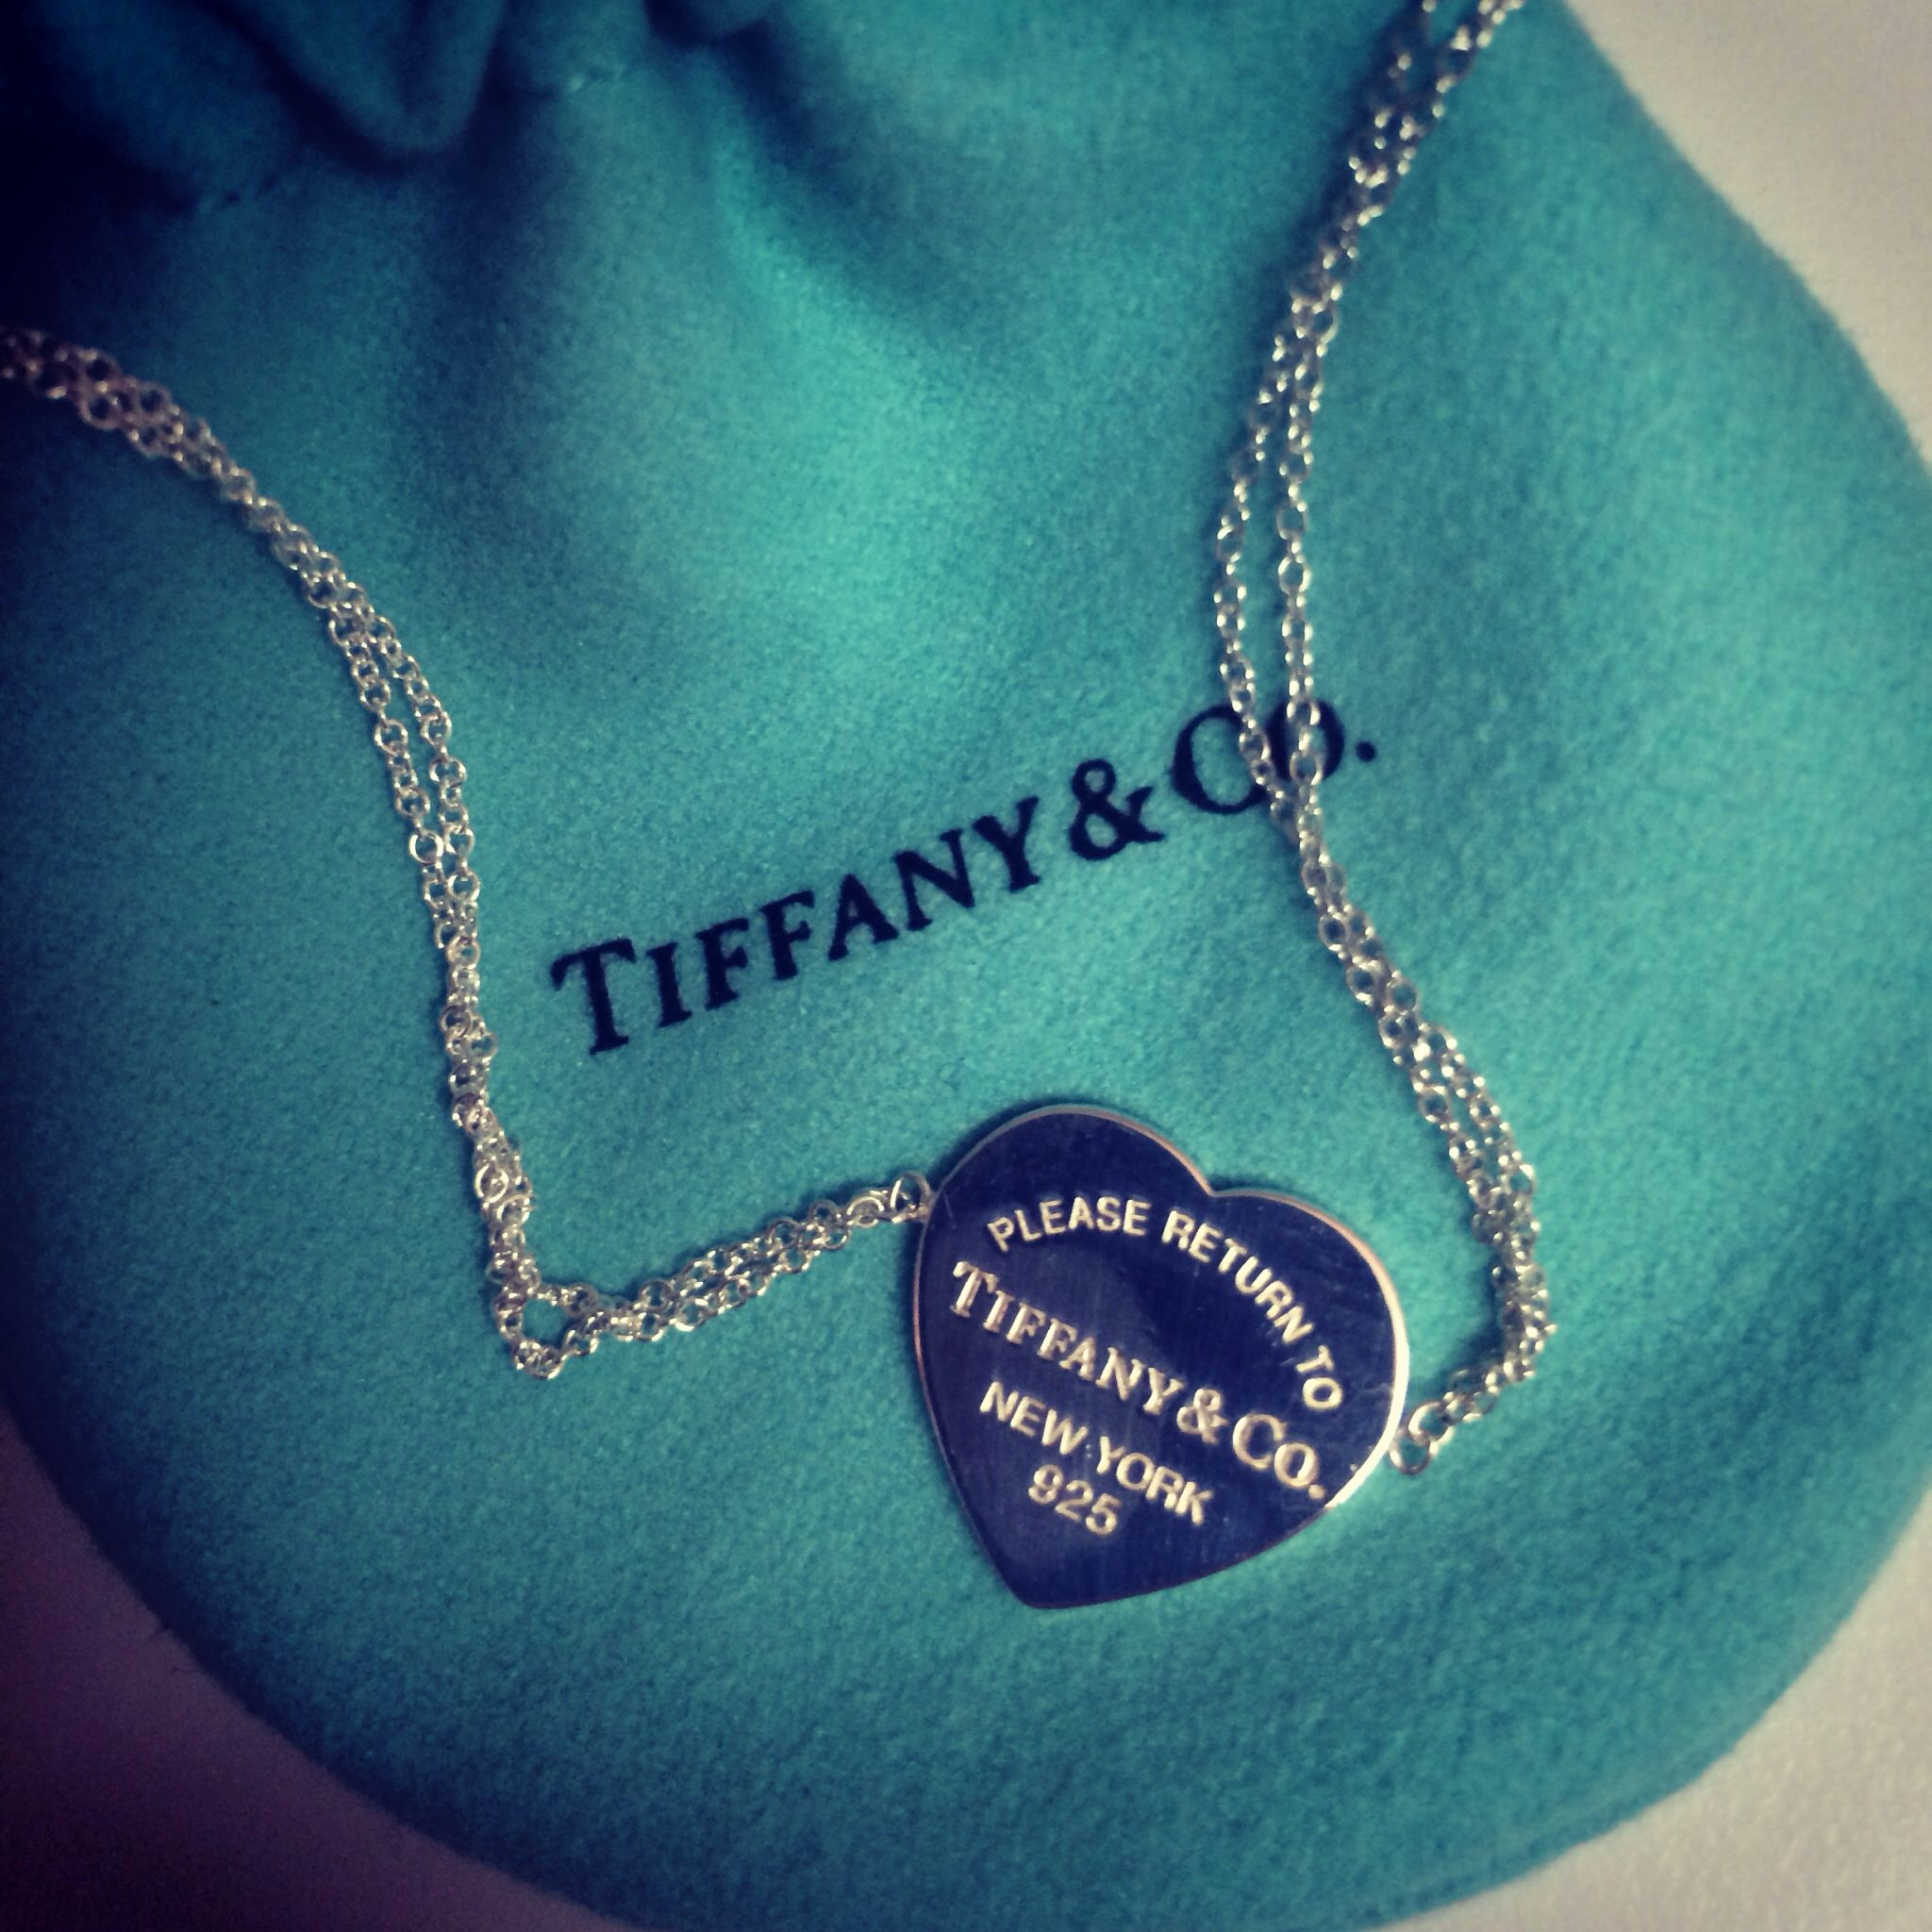 It Doesn't Have To Be Tiffany's But I Want Something